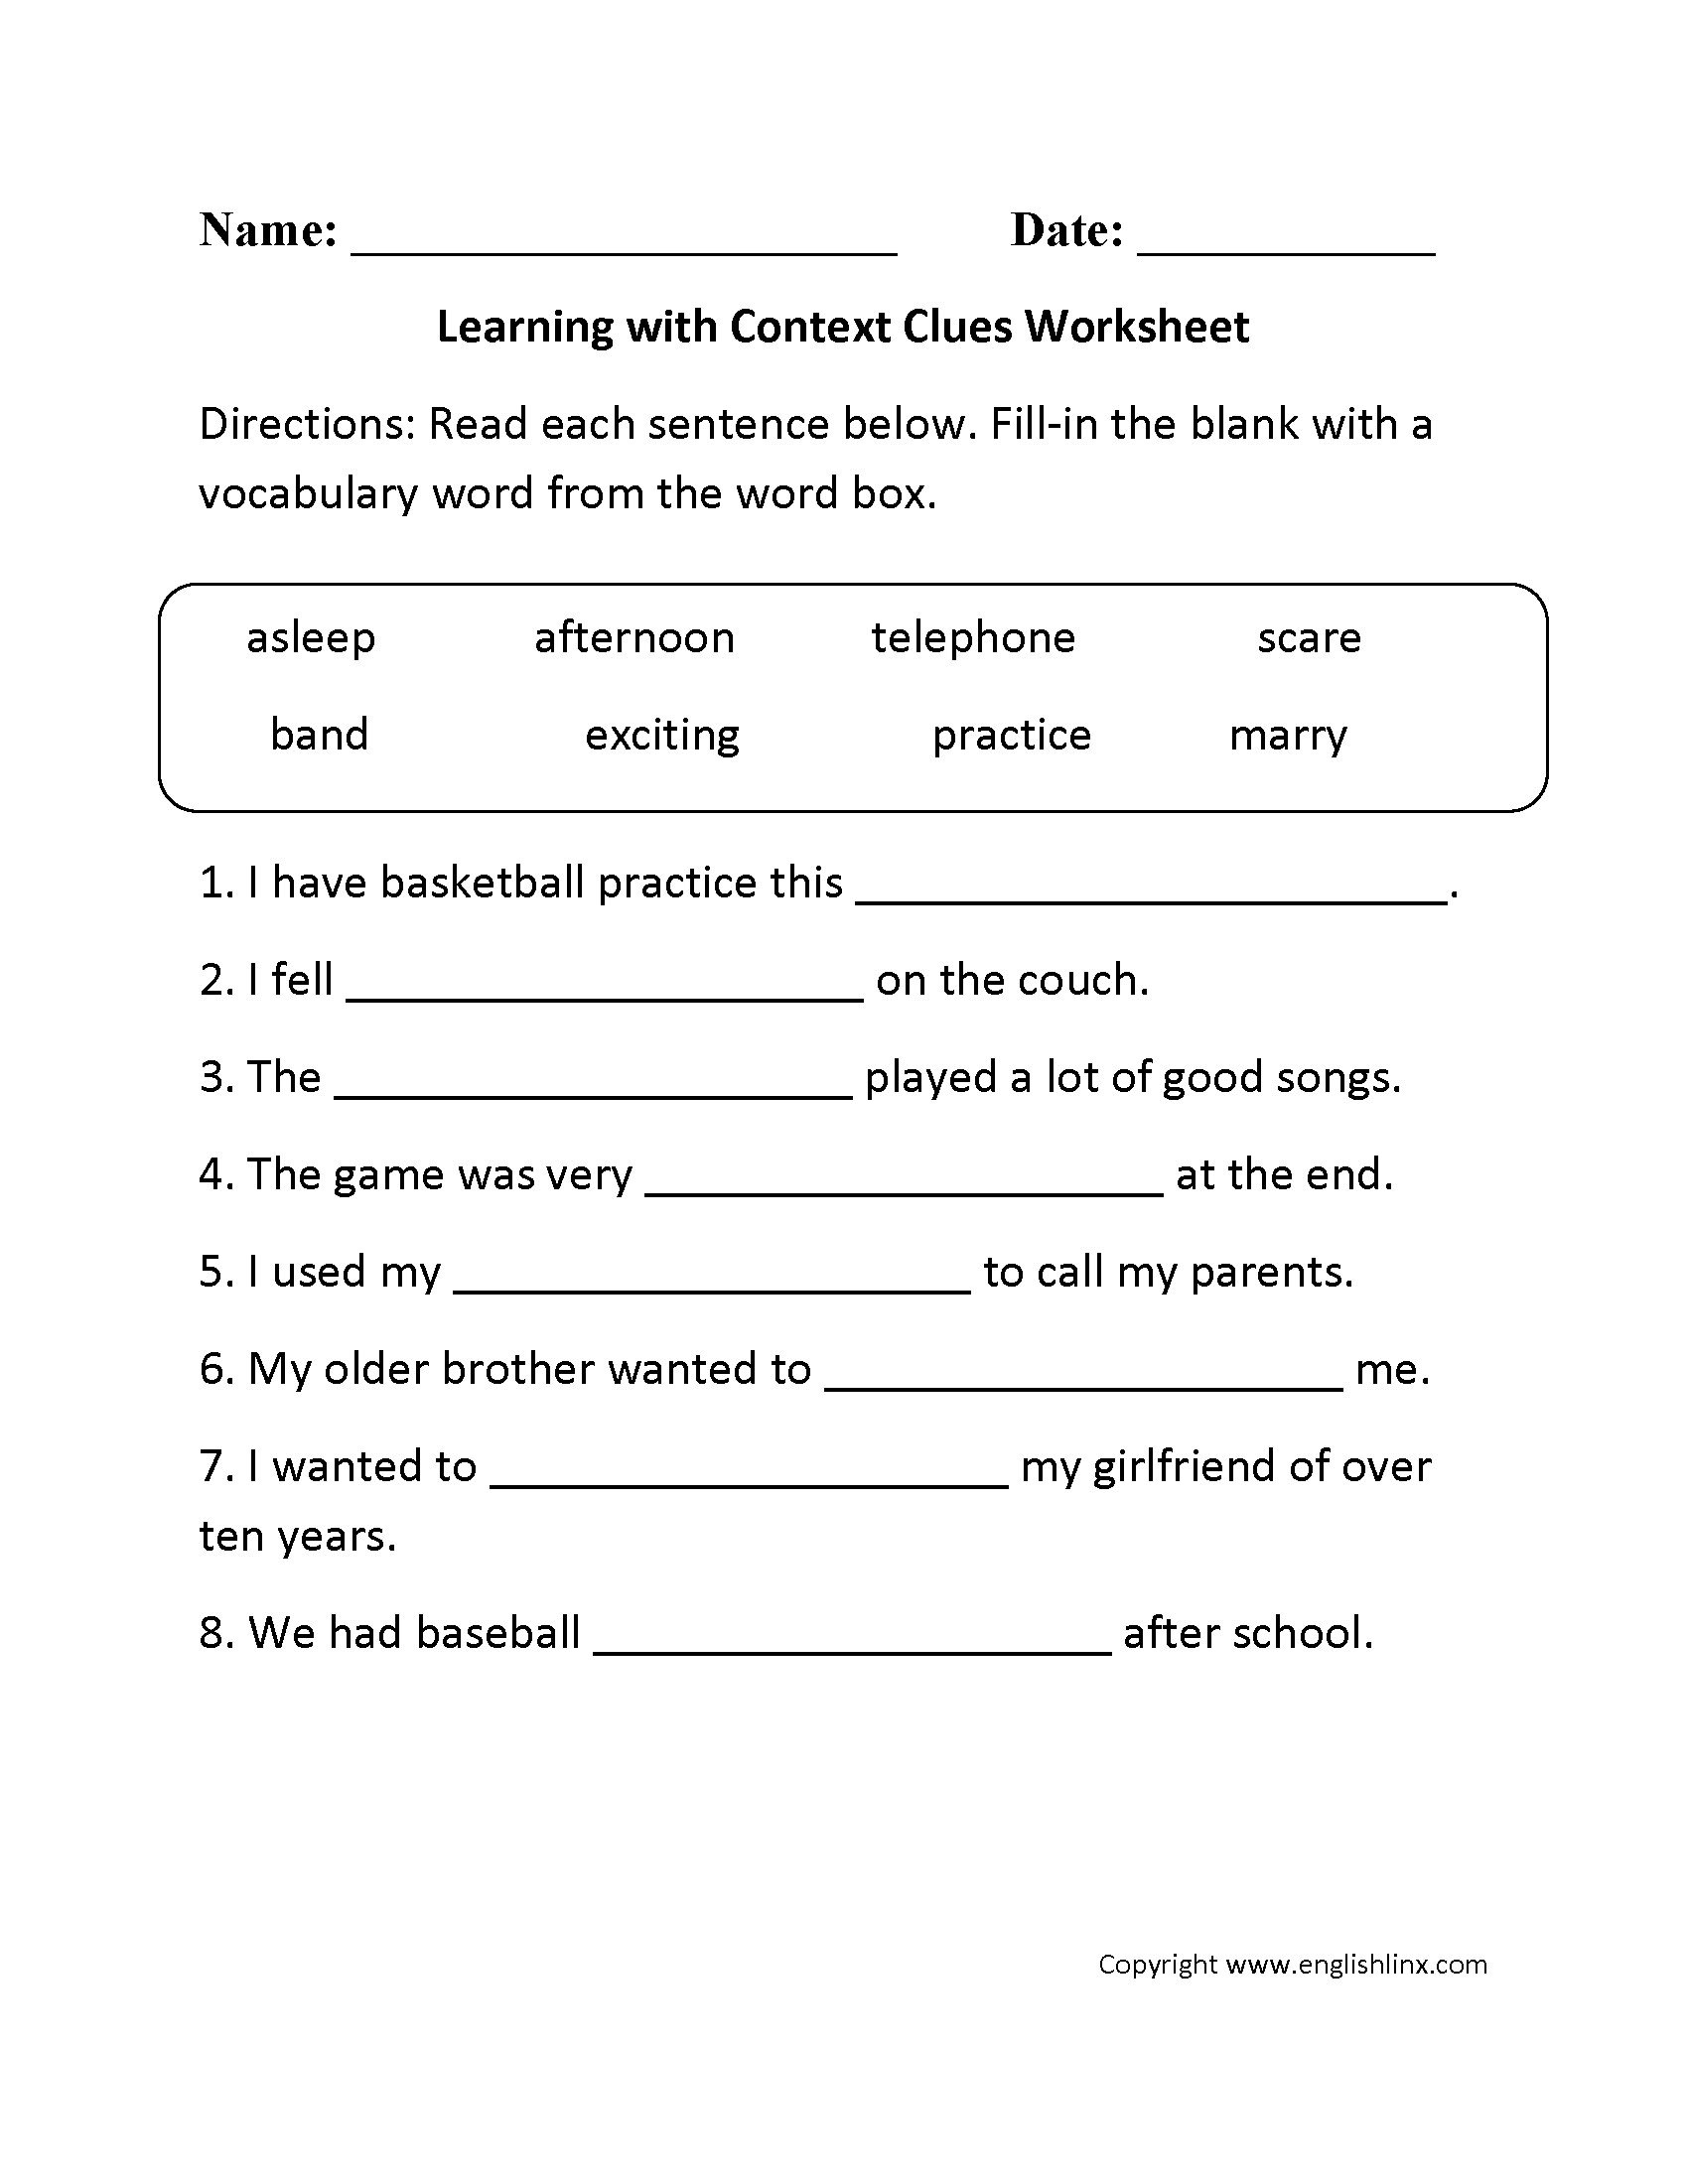 Context Clues Worksheets Second Grade Unique Jigsaw Puzzles Phonemic Awareness Worksheets